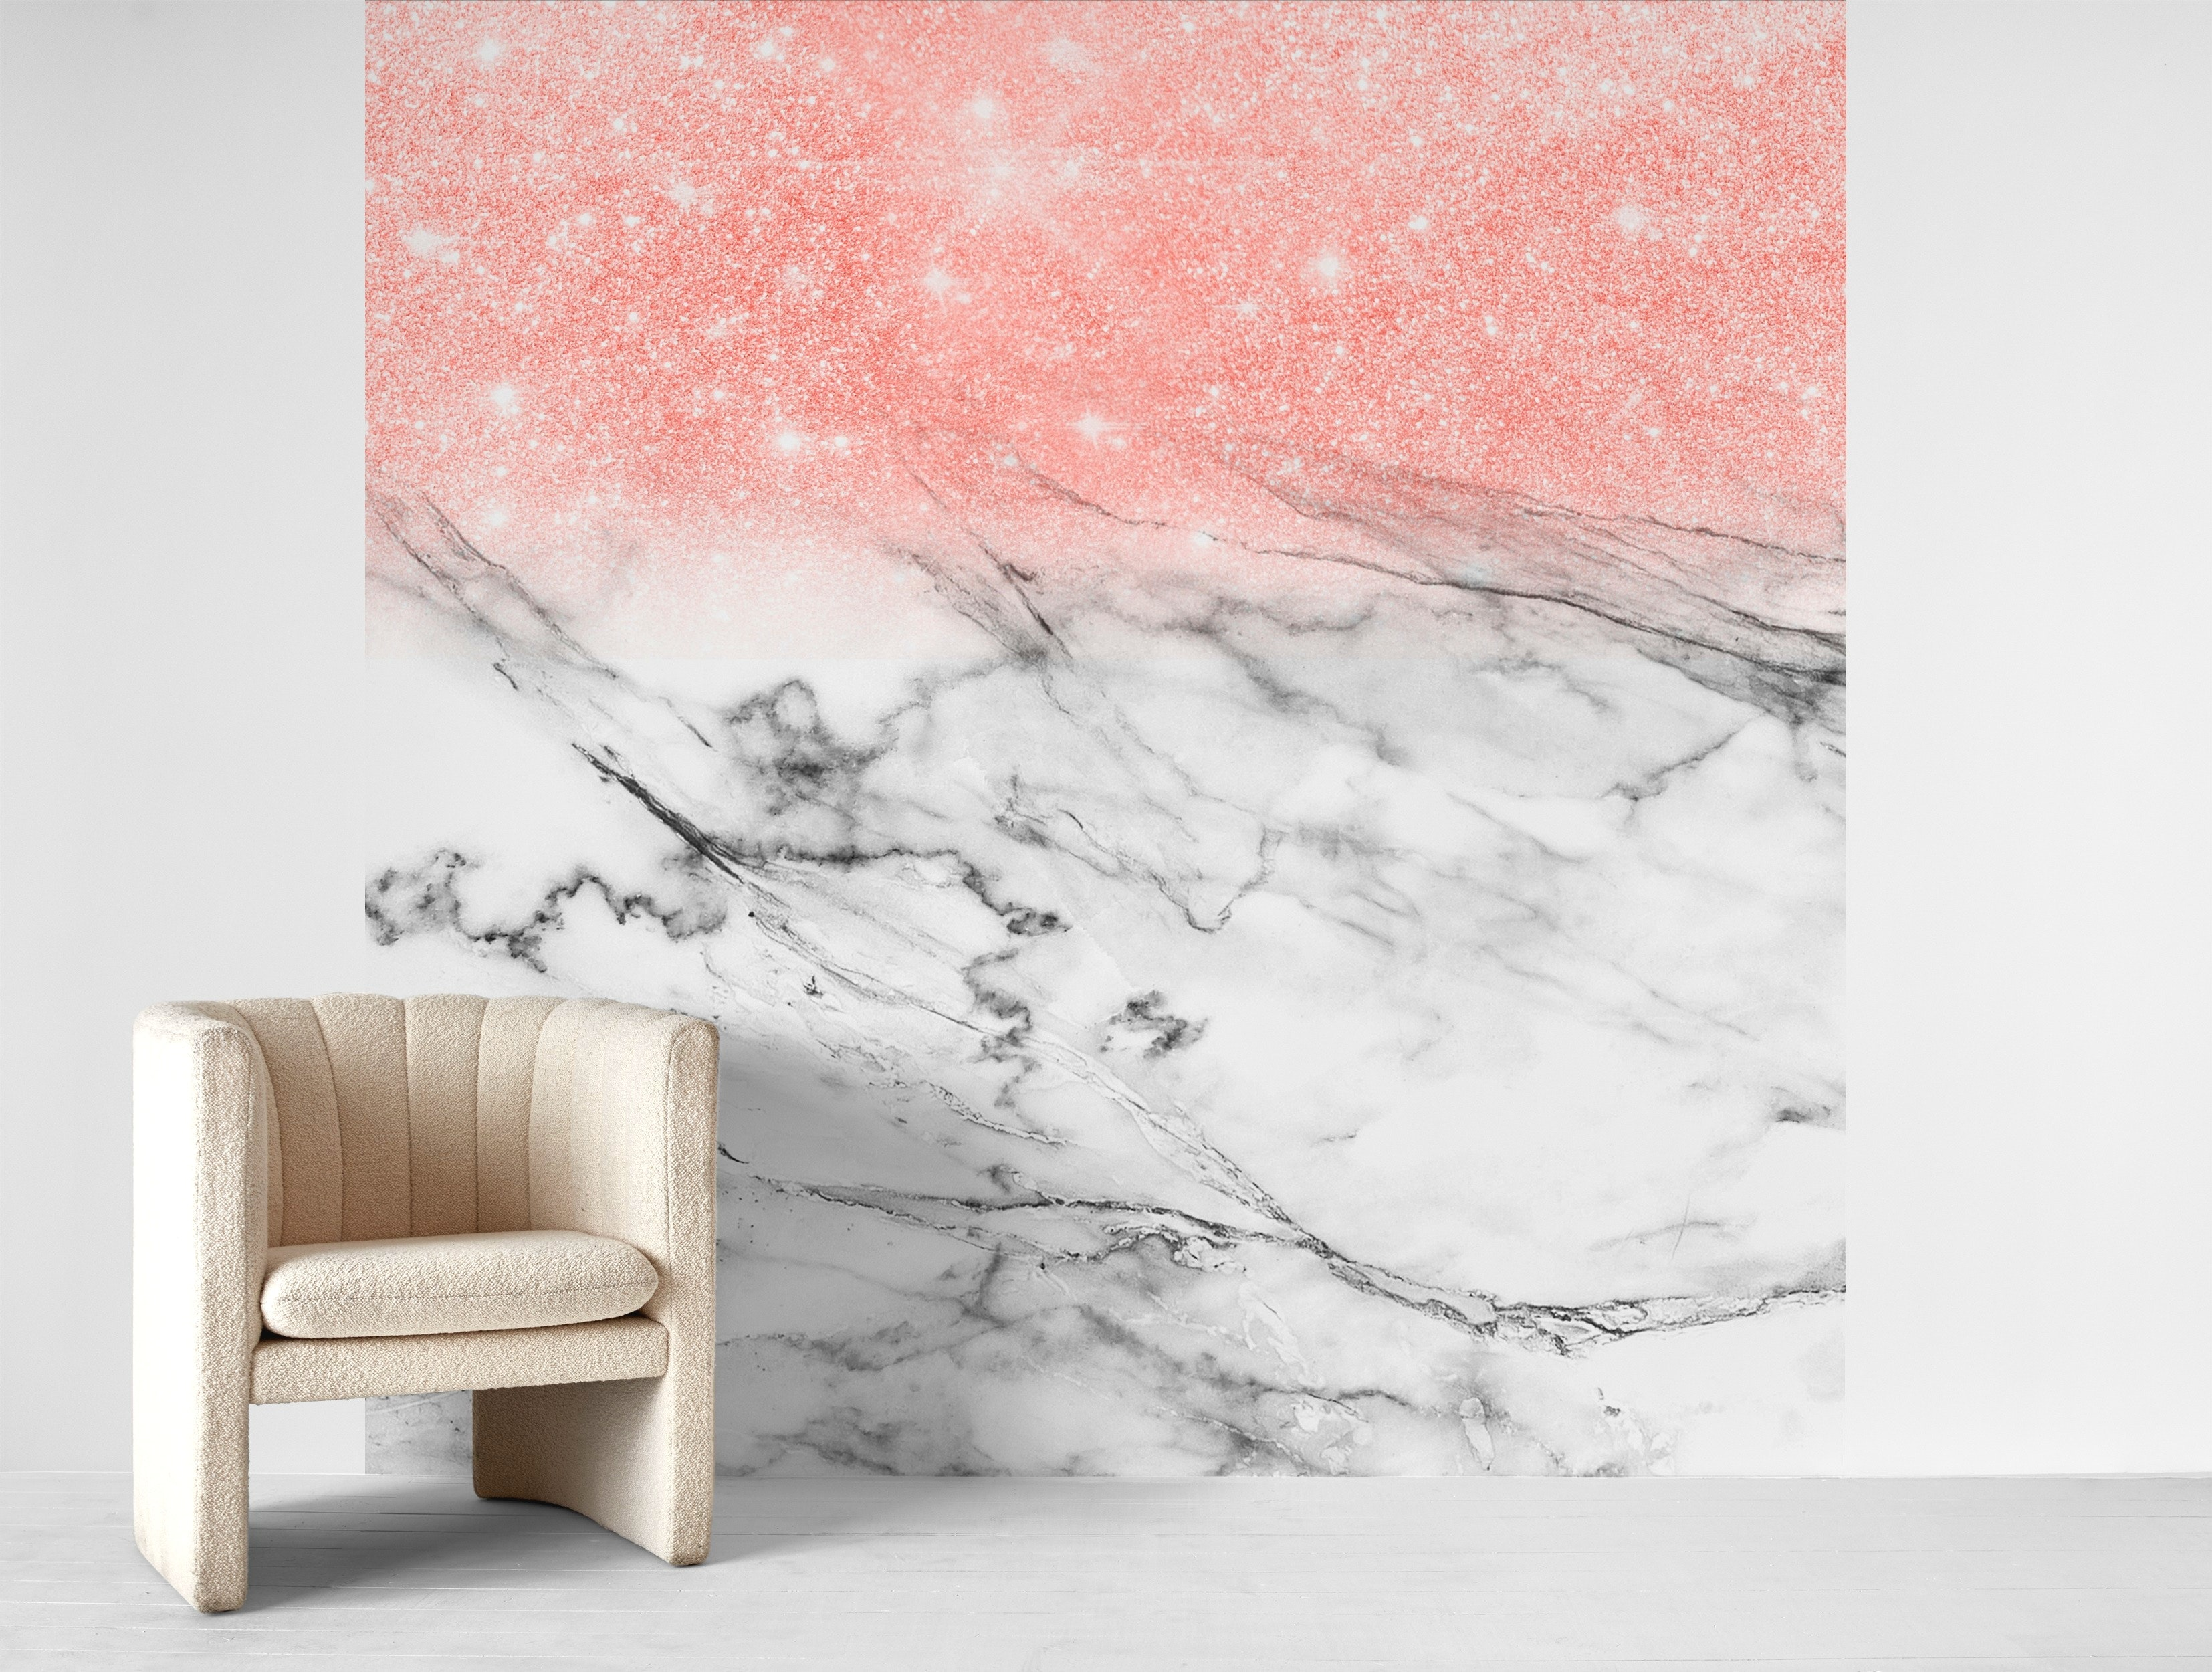 Buy Rose Gold Glitter On Marble Wallpaper Free Us Shipping At Happywall Com